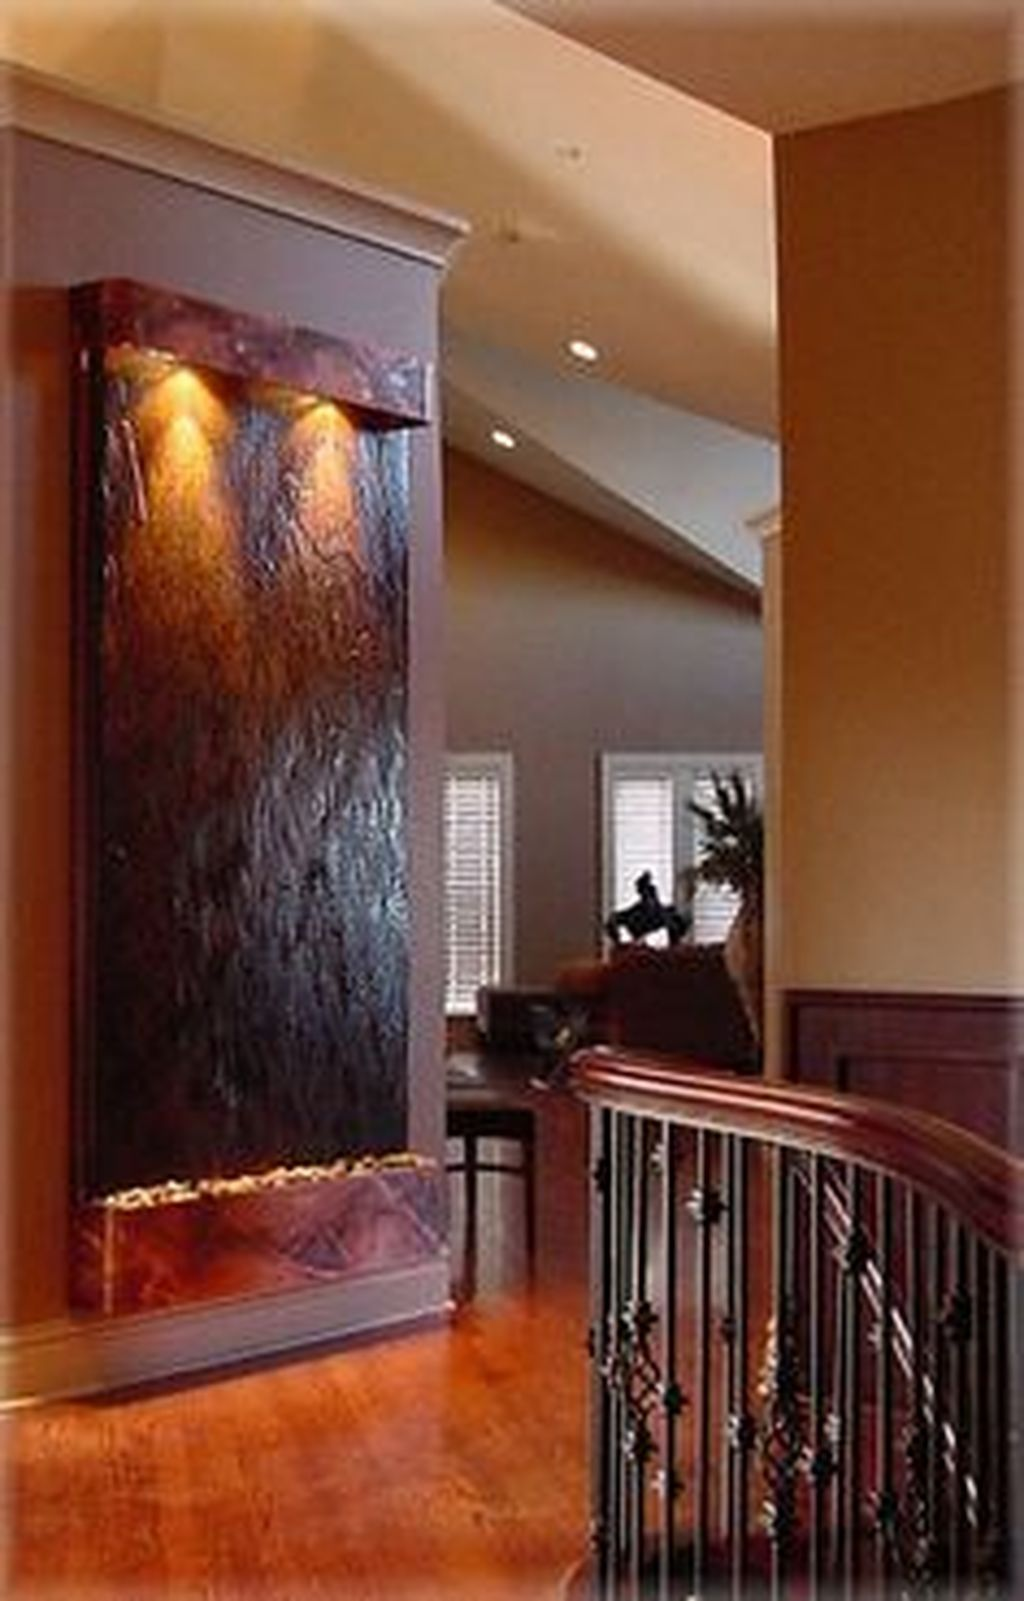 32 Fabulous Indoor Wall Waterfall Design Ideas With Images